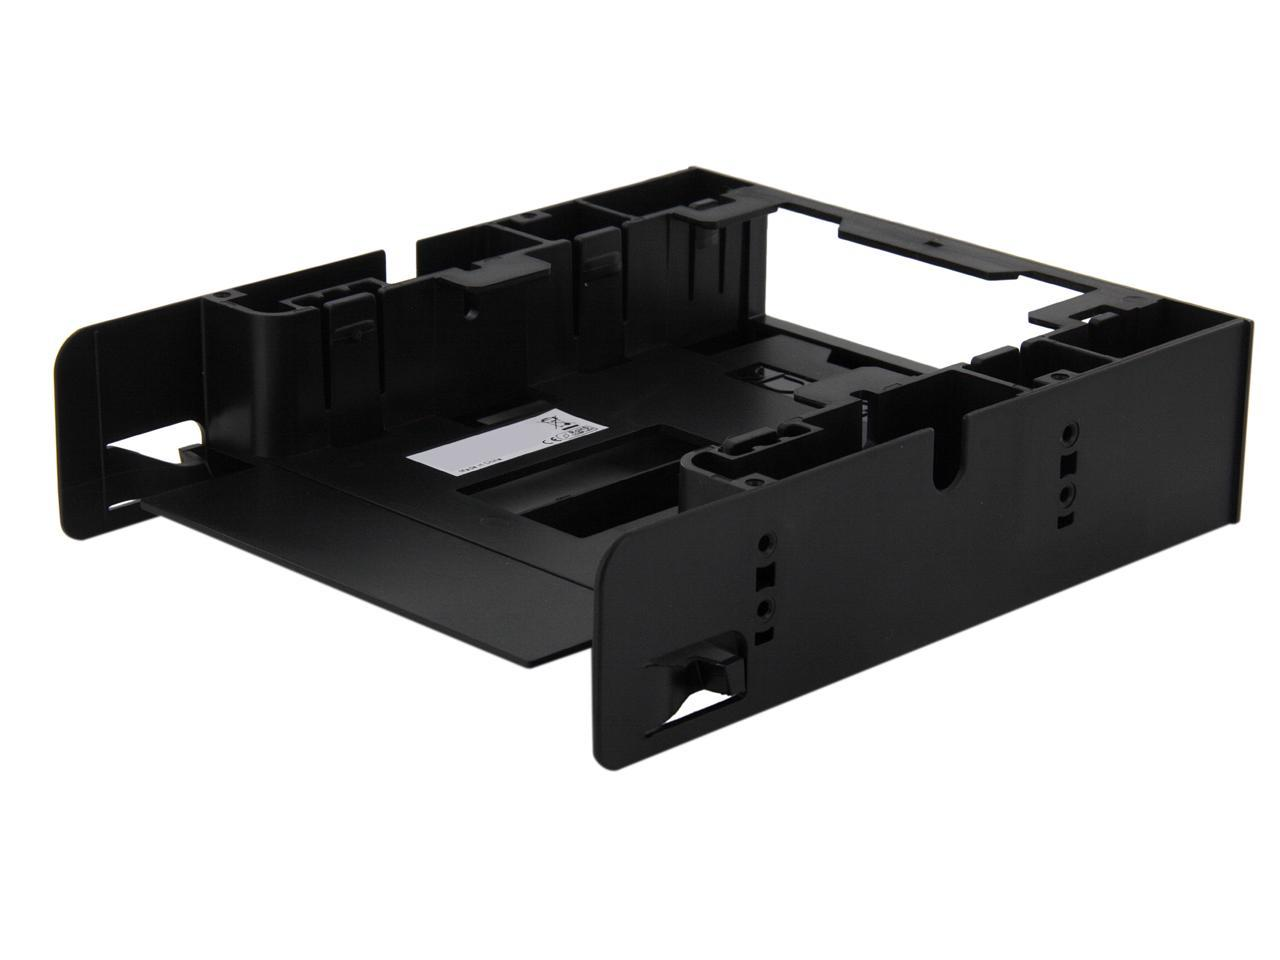 Flex-FIT Trio MB343SP ICY DOCK Dual 2.5 SSD 1 x 3.5 HDD Device Bay to 5.25 Drive Bay Converter//Mounting//Kit//Adapter